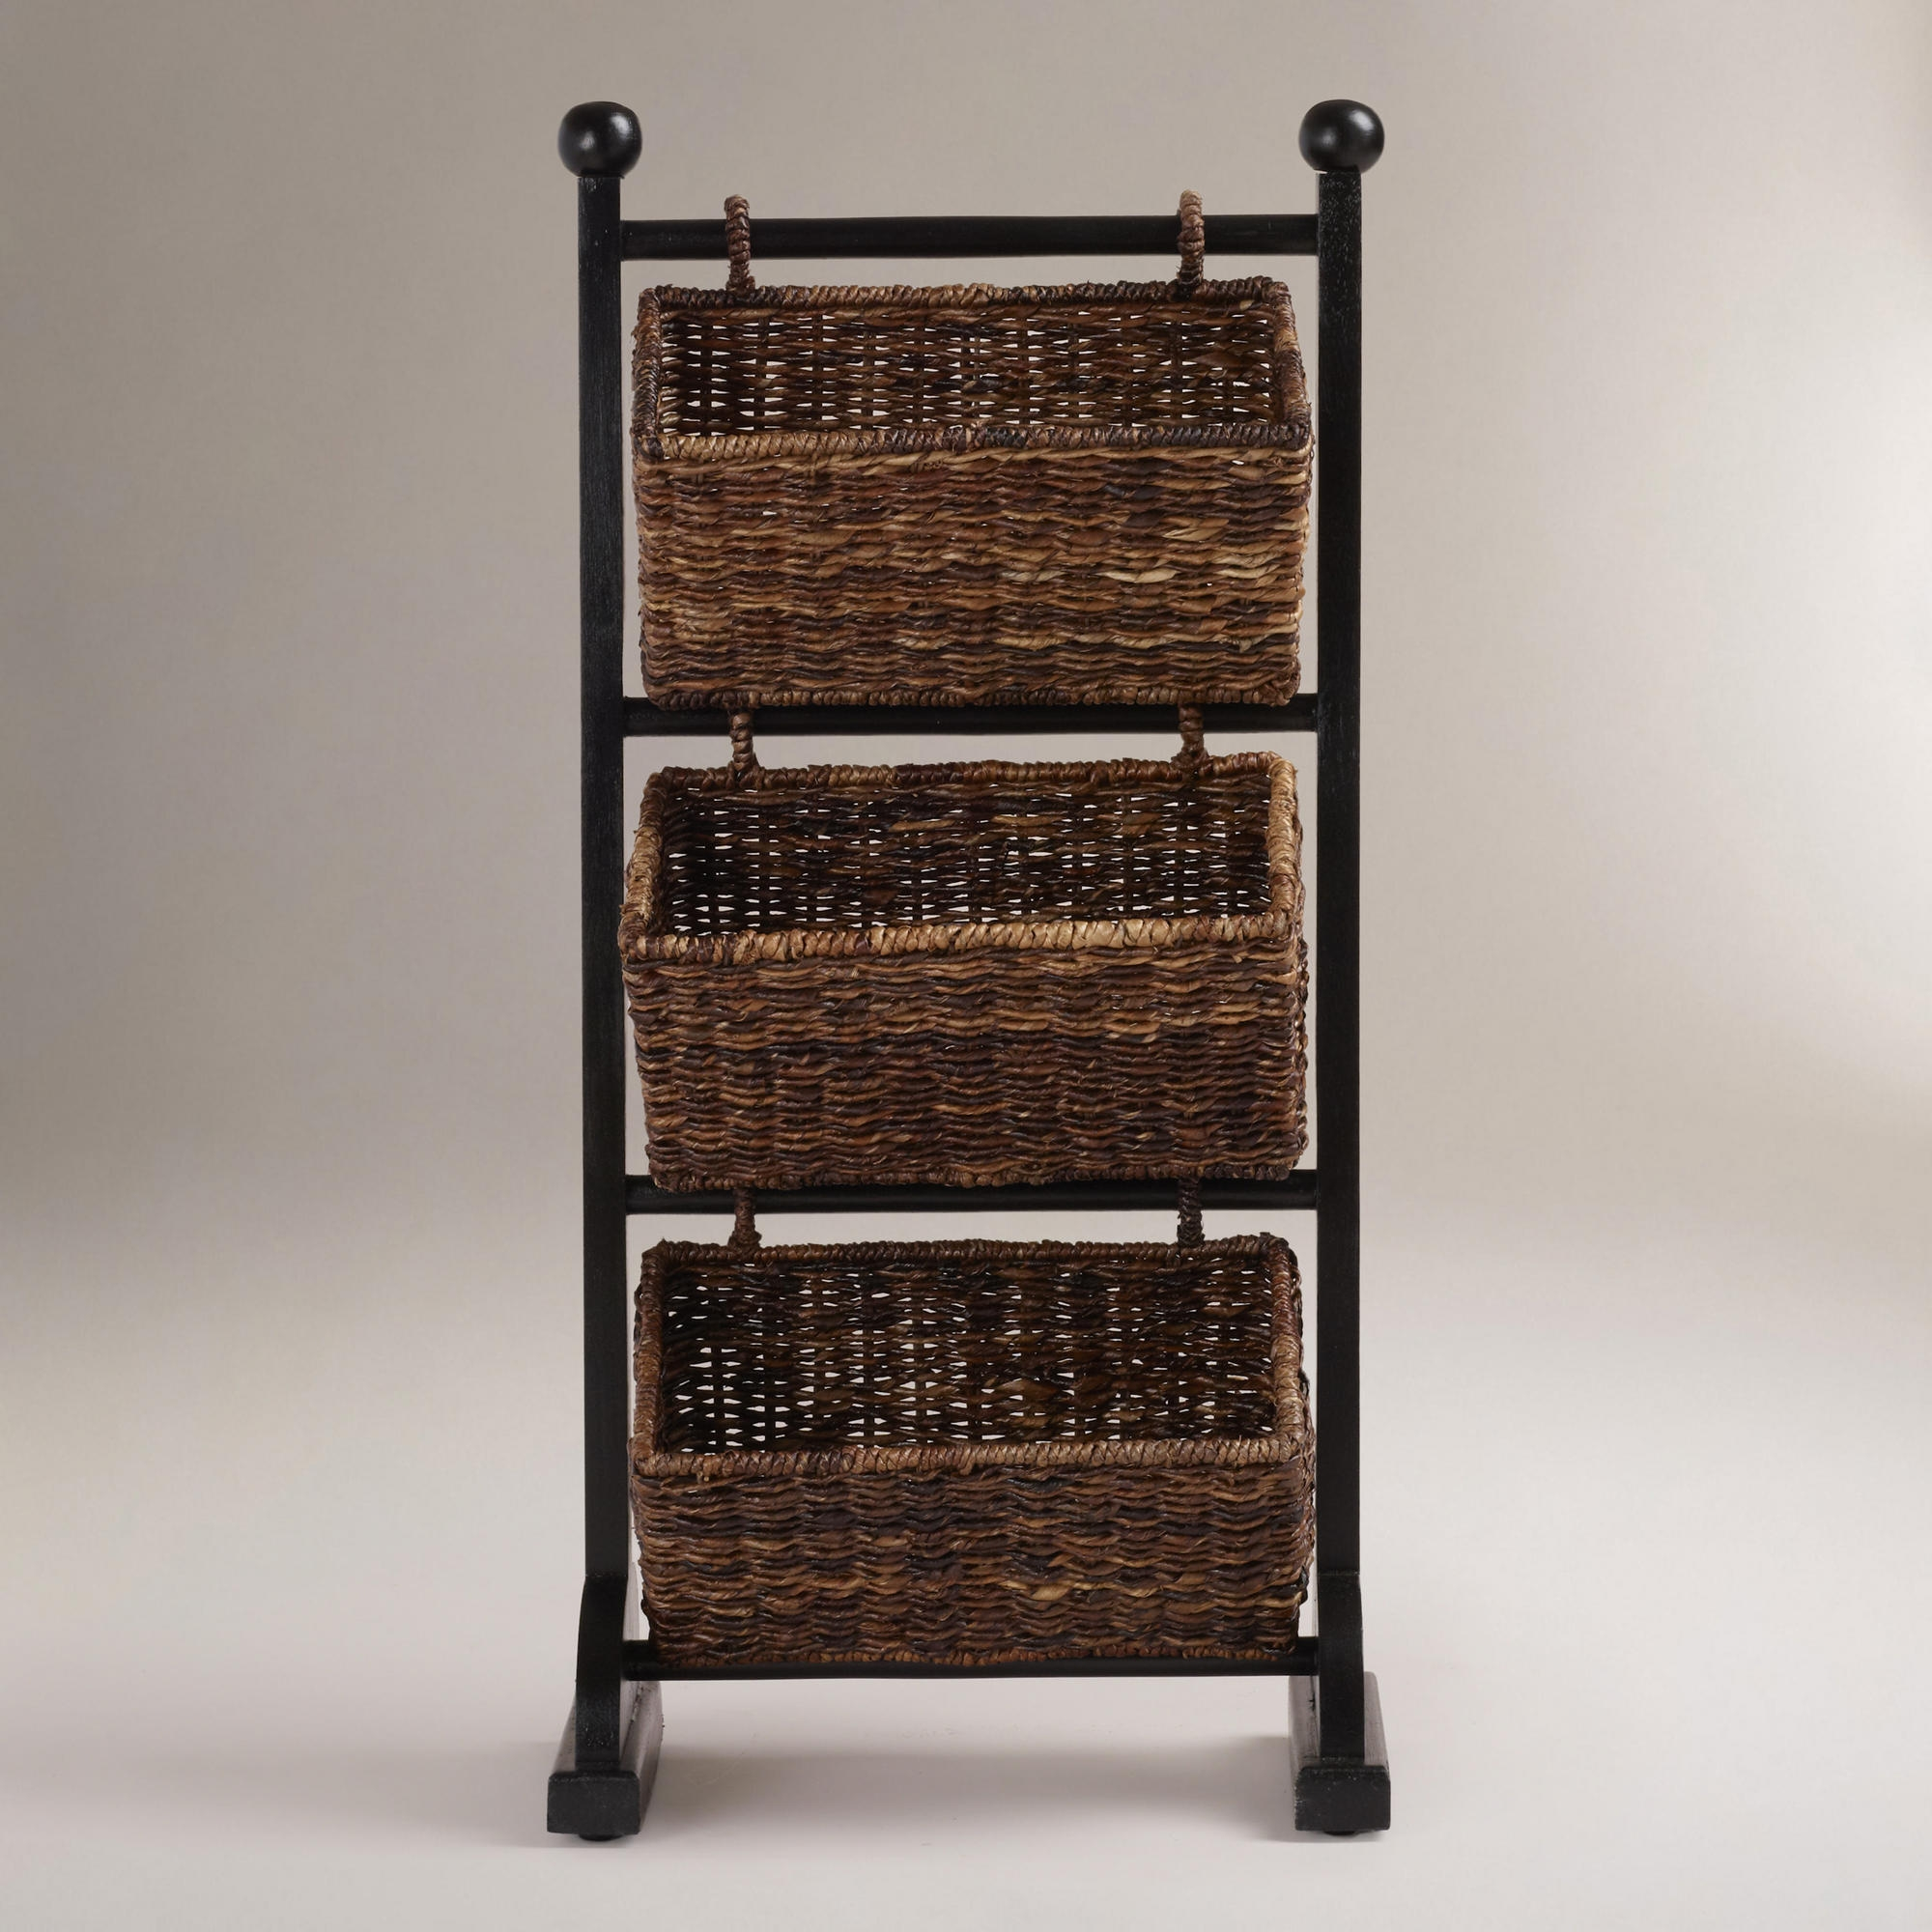 Small Storage Cabinet With Baskets